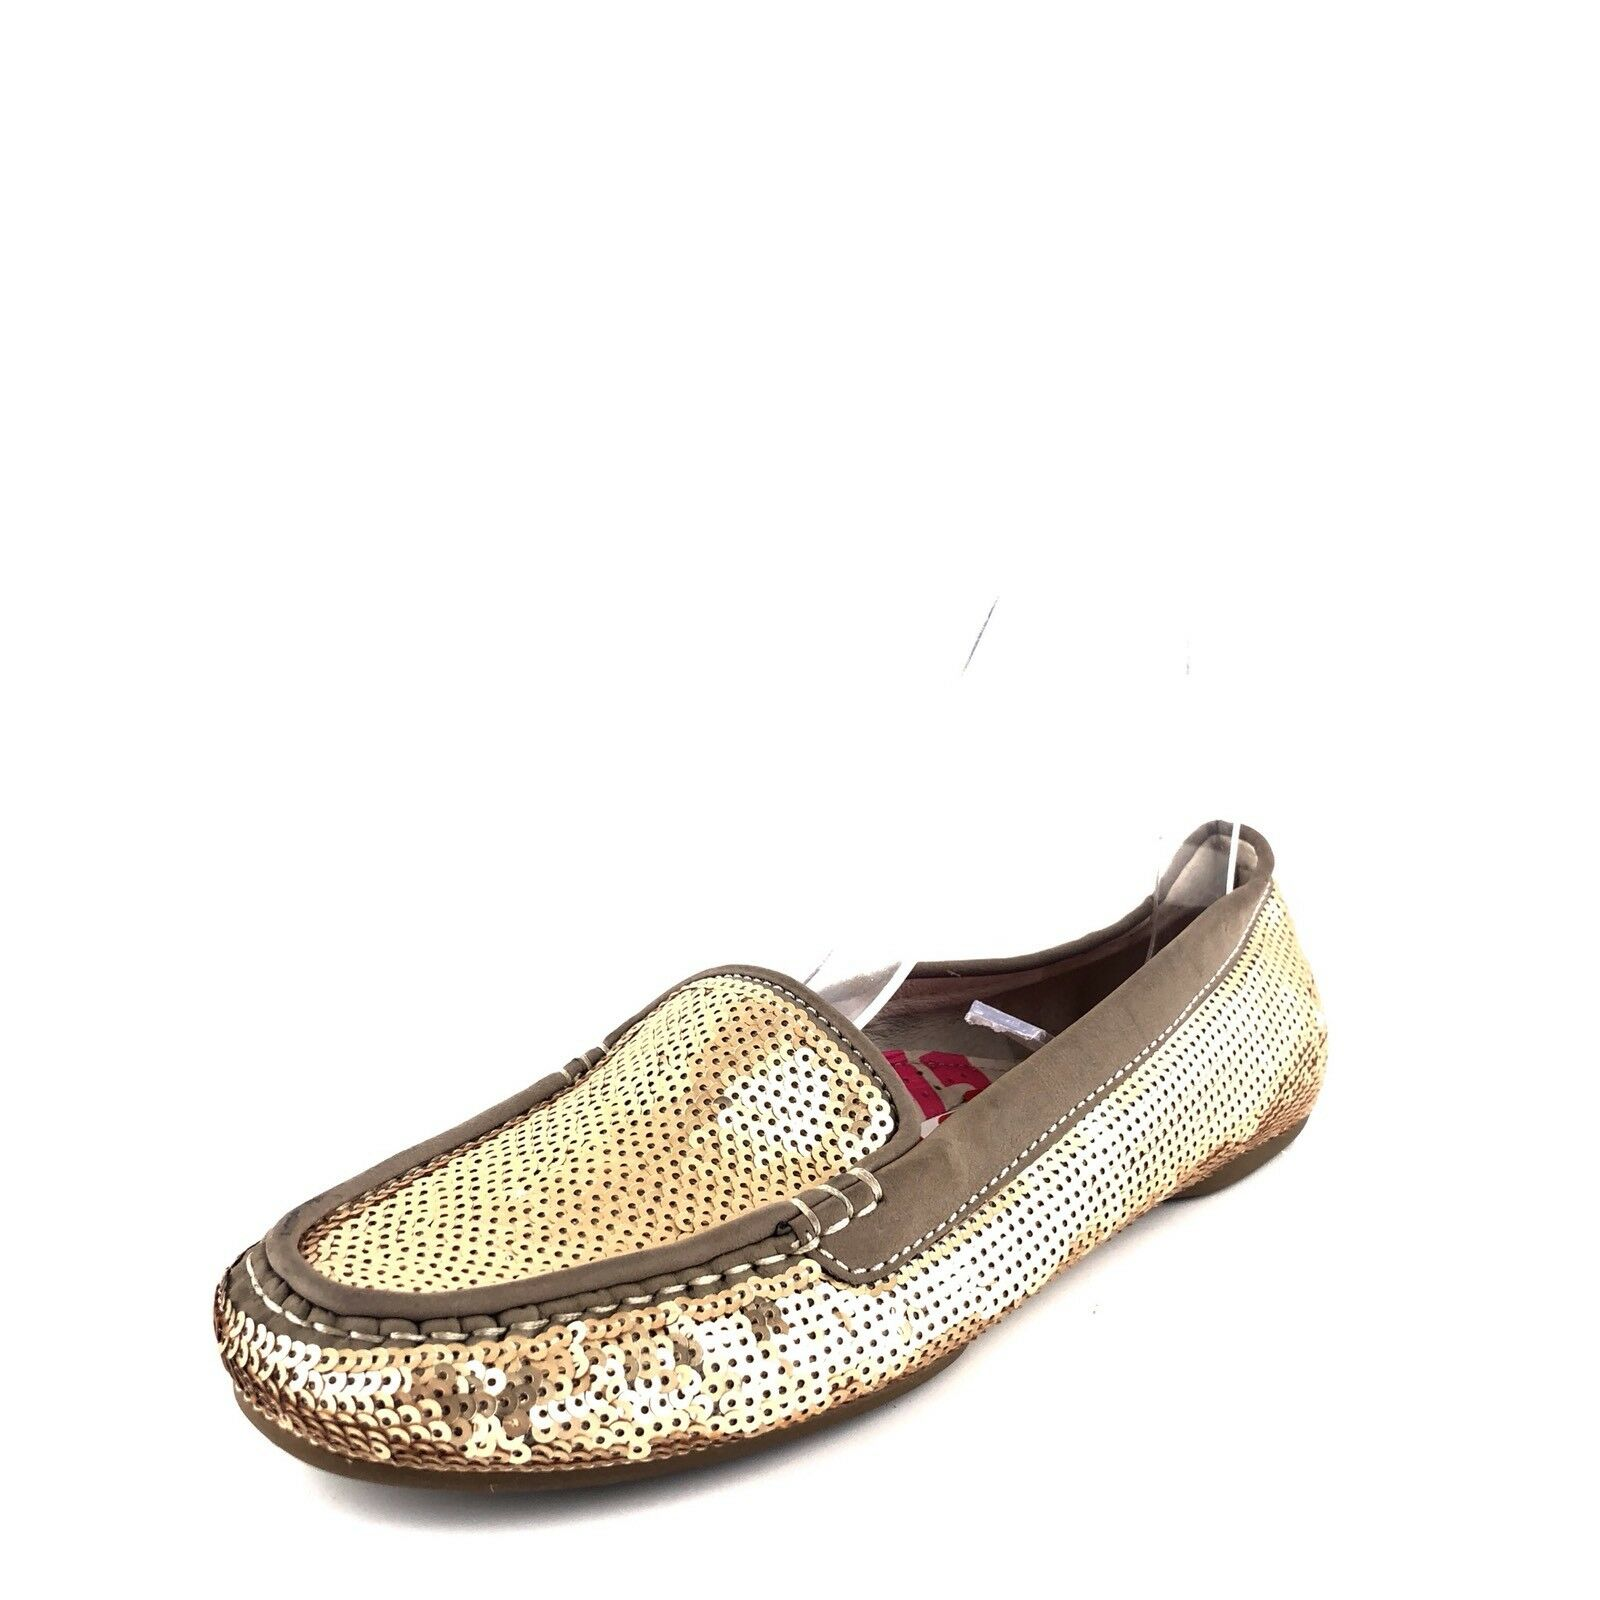 Women's Joan & David 'Dafaline2' gold Sequinned Loafers shoes Size 8.5 M